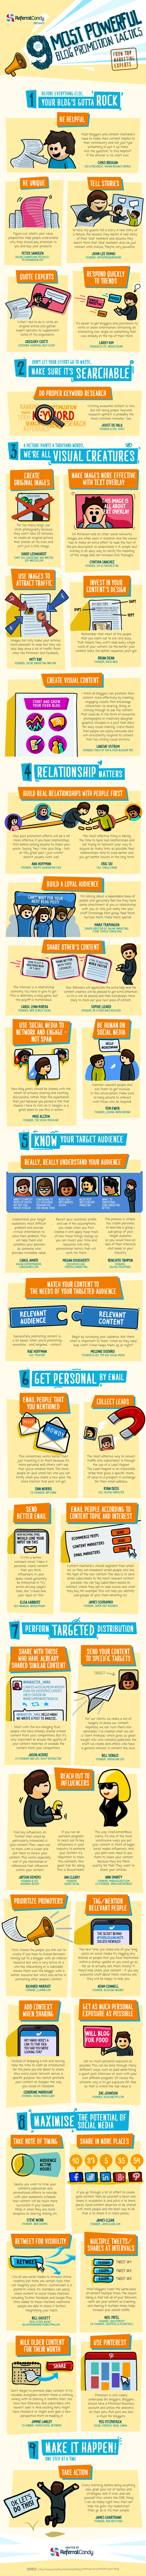 Infographic outlines blog promotion tips